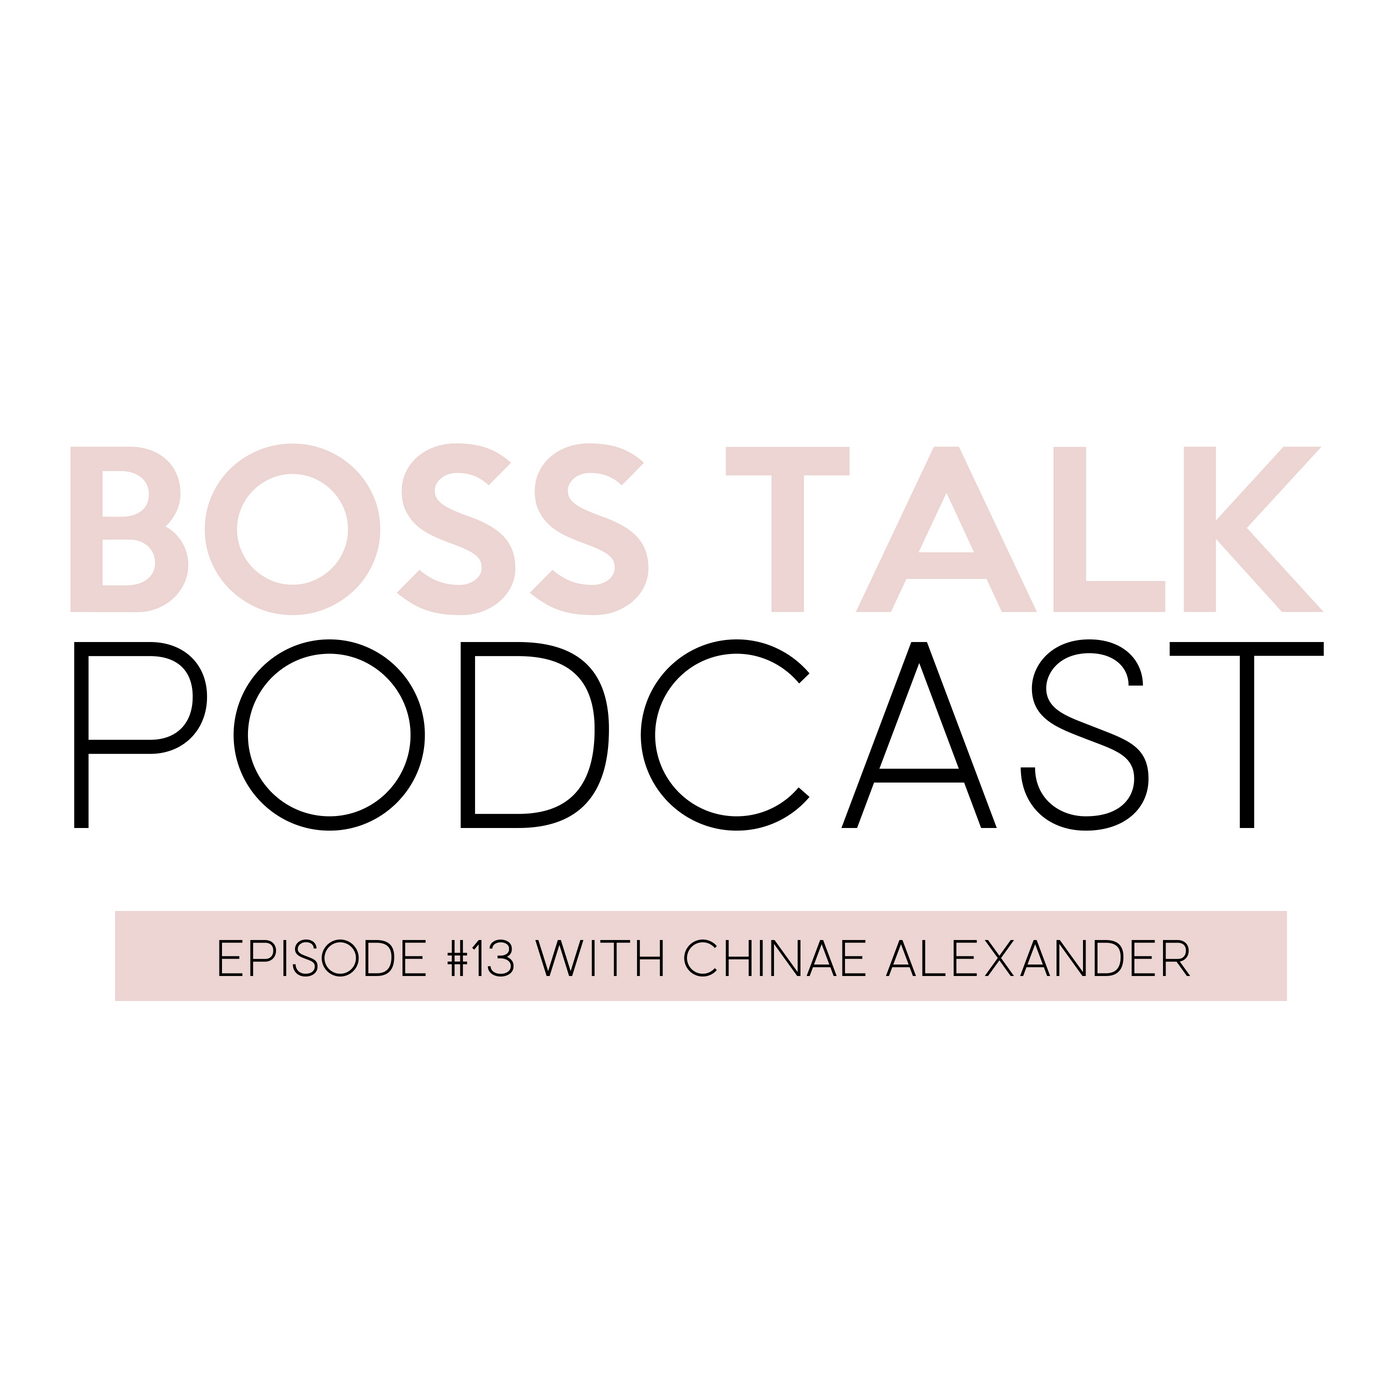 BOSS TALK PODCAST